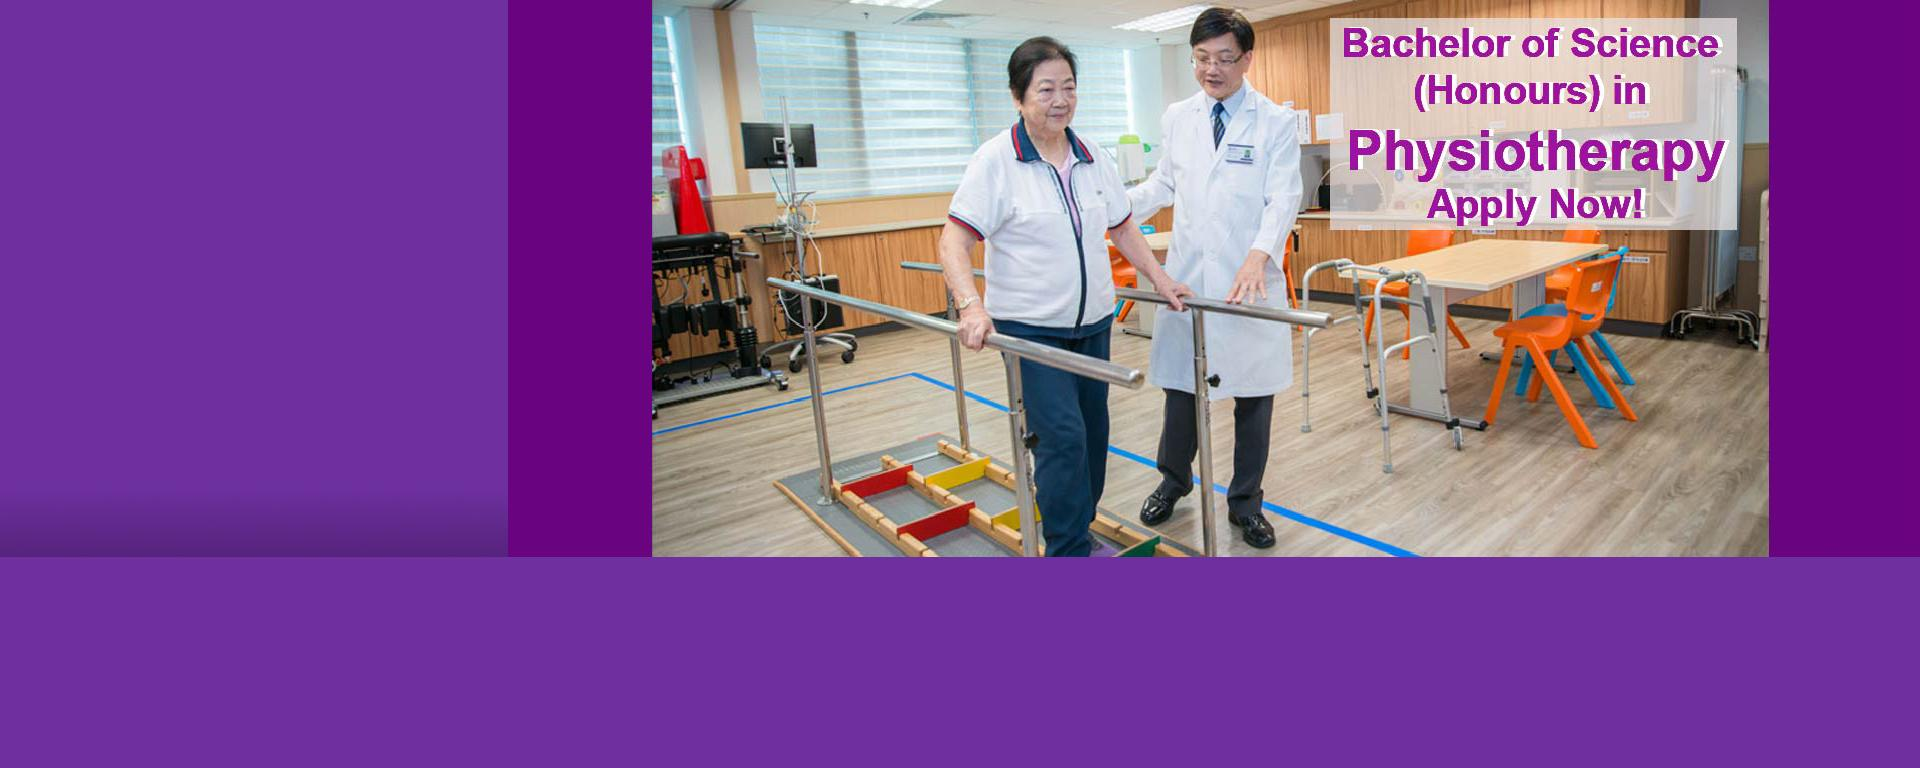 New programme: Bachelor of Science (Honours) in Physiotherapy